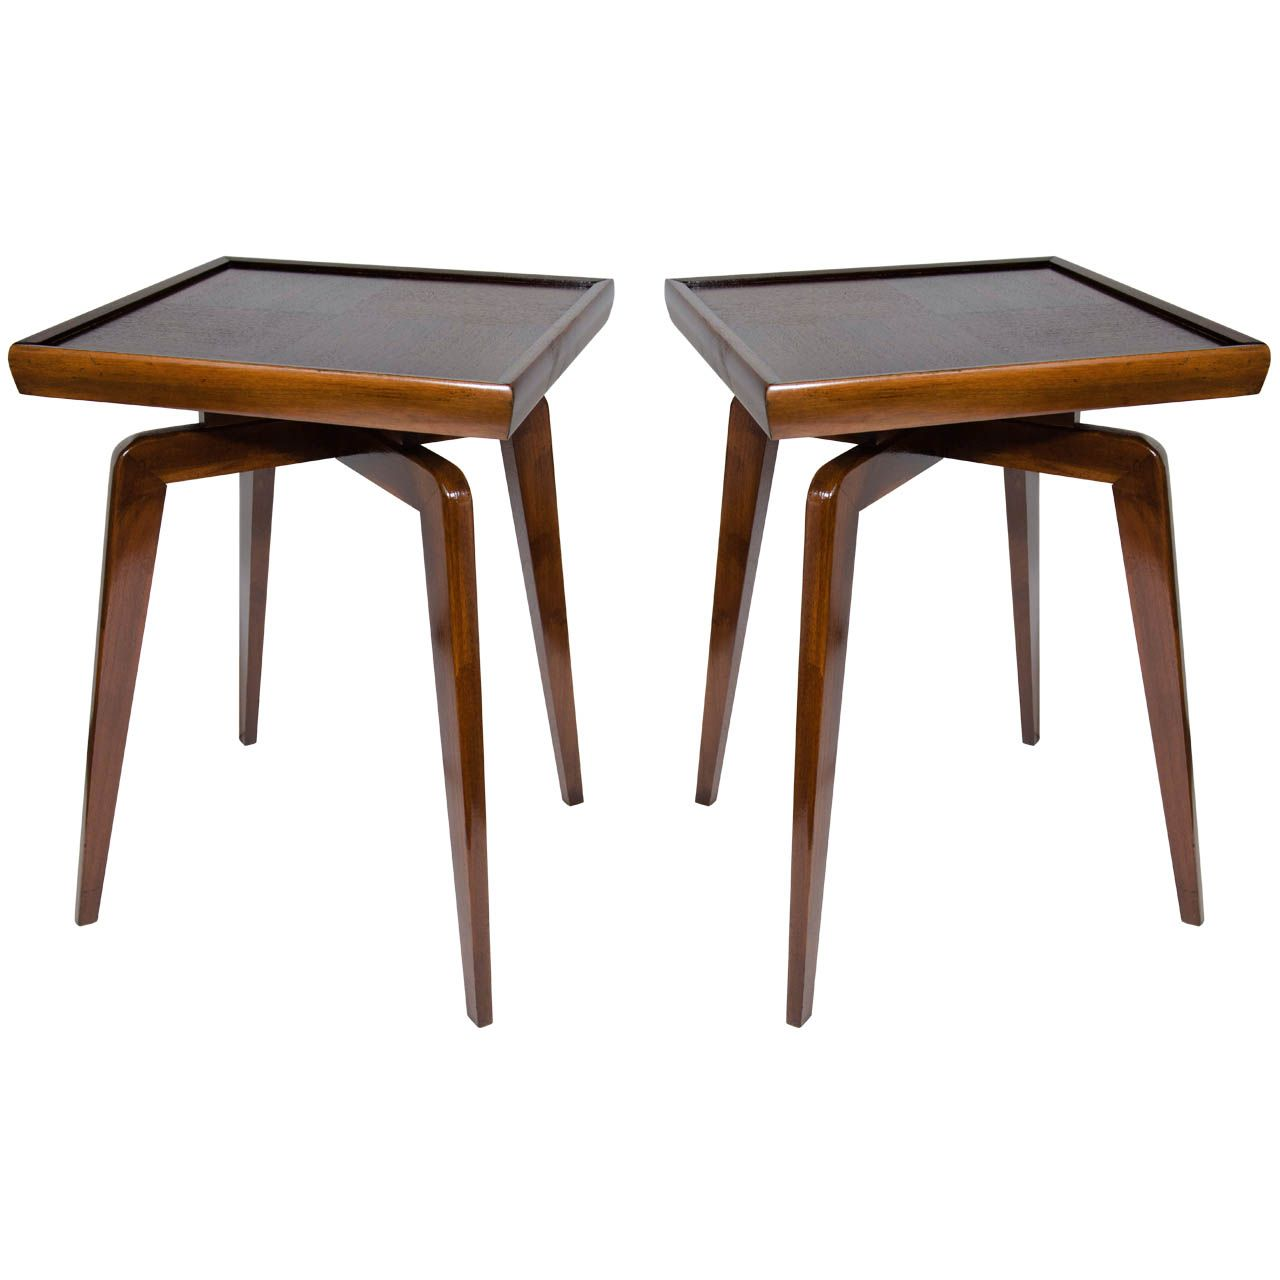 living room side tables modern pair of mid century modern walnut wood side tables with 19512